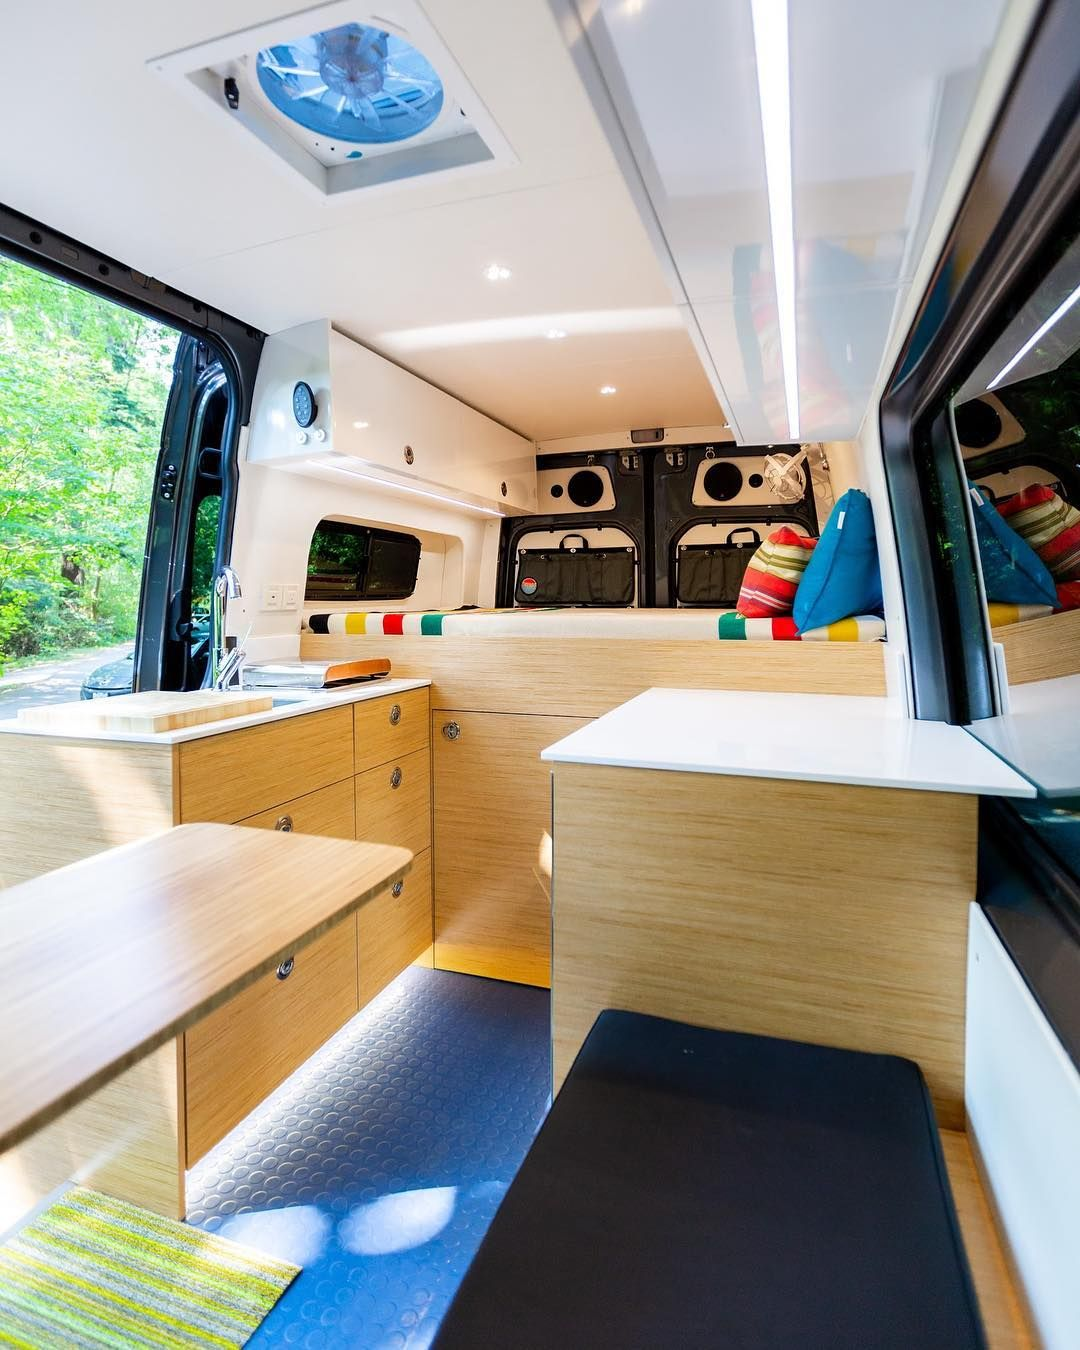 This Company Makes Some Of The Coolest Sprinter Van Conversions I Want To Build A Di Camper Van Conversion Diy Sprinter Van Conversion Van Conversion Interior